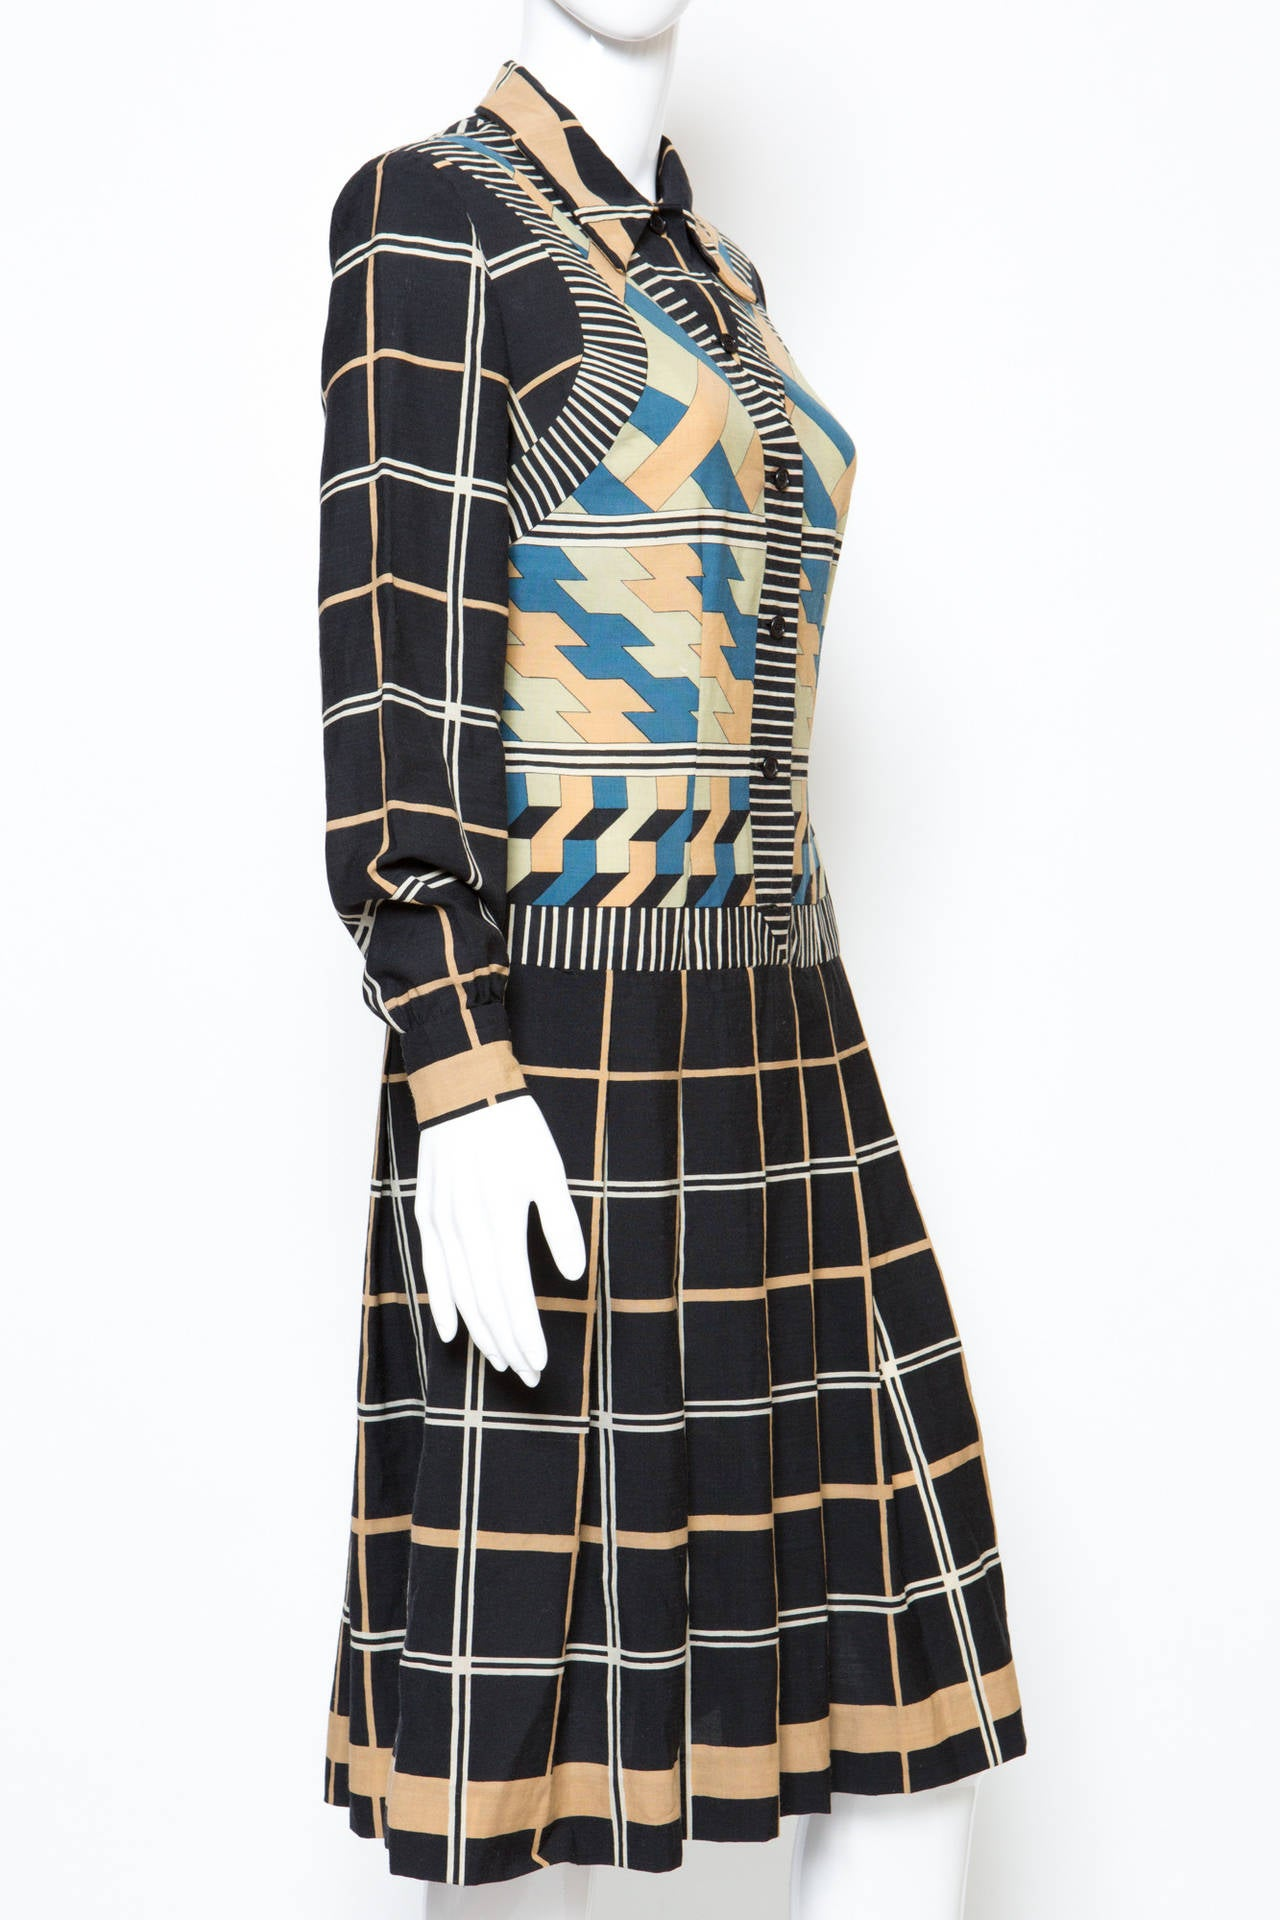 1970s Lanvin Printed Dress In Good Condition For Sale In Paris, FR